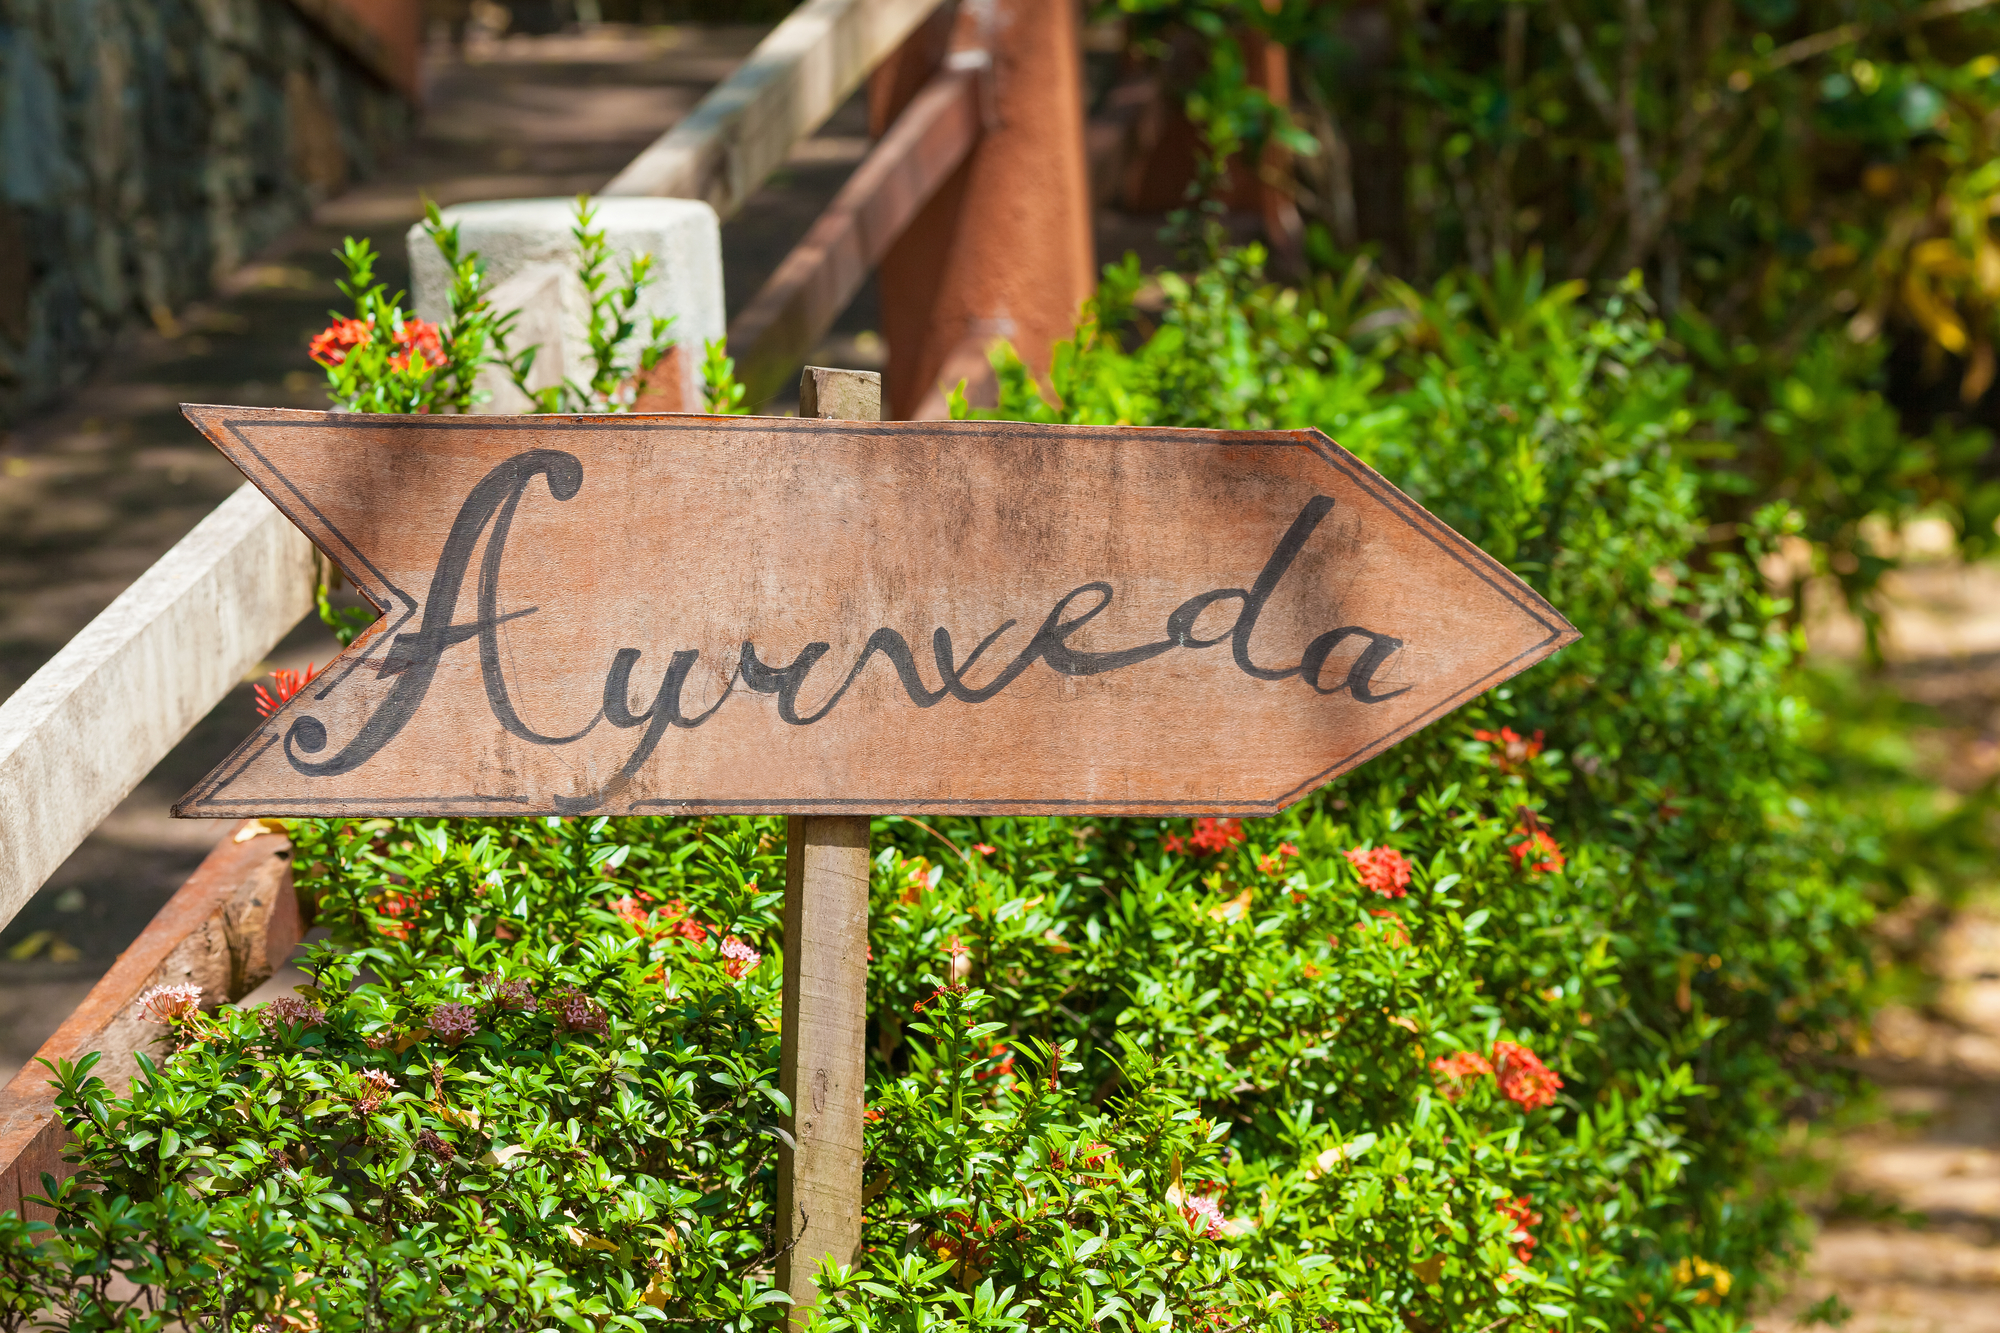 5 key factors for staying healthy using the wisdom of Ayurveda